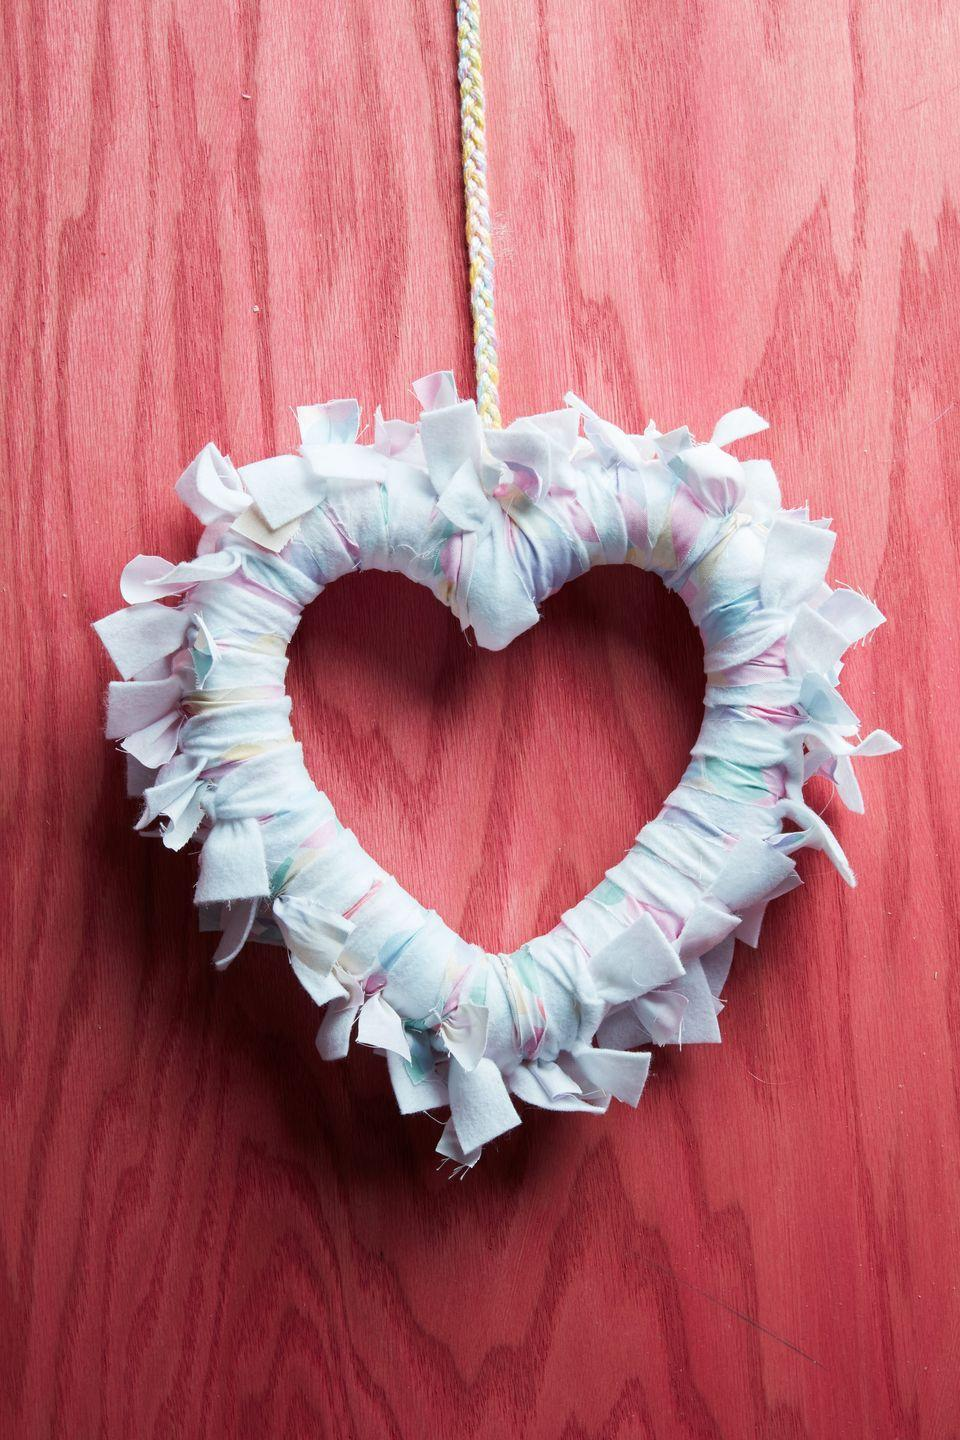 """<p>Wrap strips of soft flannel around a heart-shaped foam wreath form to create a soft statement piece that says """"I love you!""""<br><br><a class=""""link rapid-noclick-resp"""" href=""""https://www.amazon.com/Decorate-Garland-Valentines-Decoration-Rely2016/dp/B0799MLQTQ/ref=sr_1_9?tag=syn-yahoo-20&ascsubtag=%5Bartid%7C10050.g.35057743%5Bsrc%7Cyahoo-us"""" rel=""""nofollow noopener"""" target=""""_blank"""" data-ylk=""""slk:SHOP WREATH FORM"""">SHOP WREATH FORM</a></p>"""